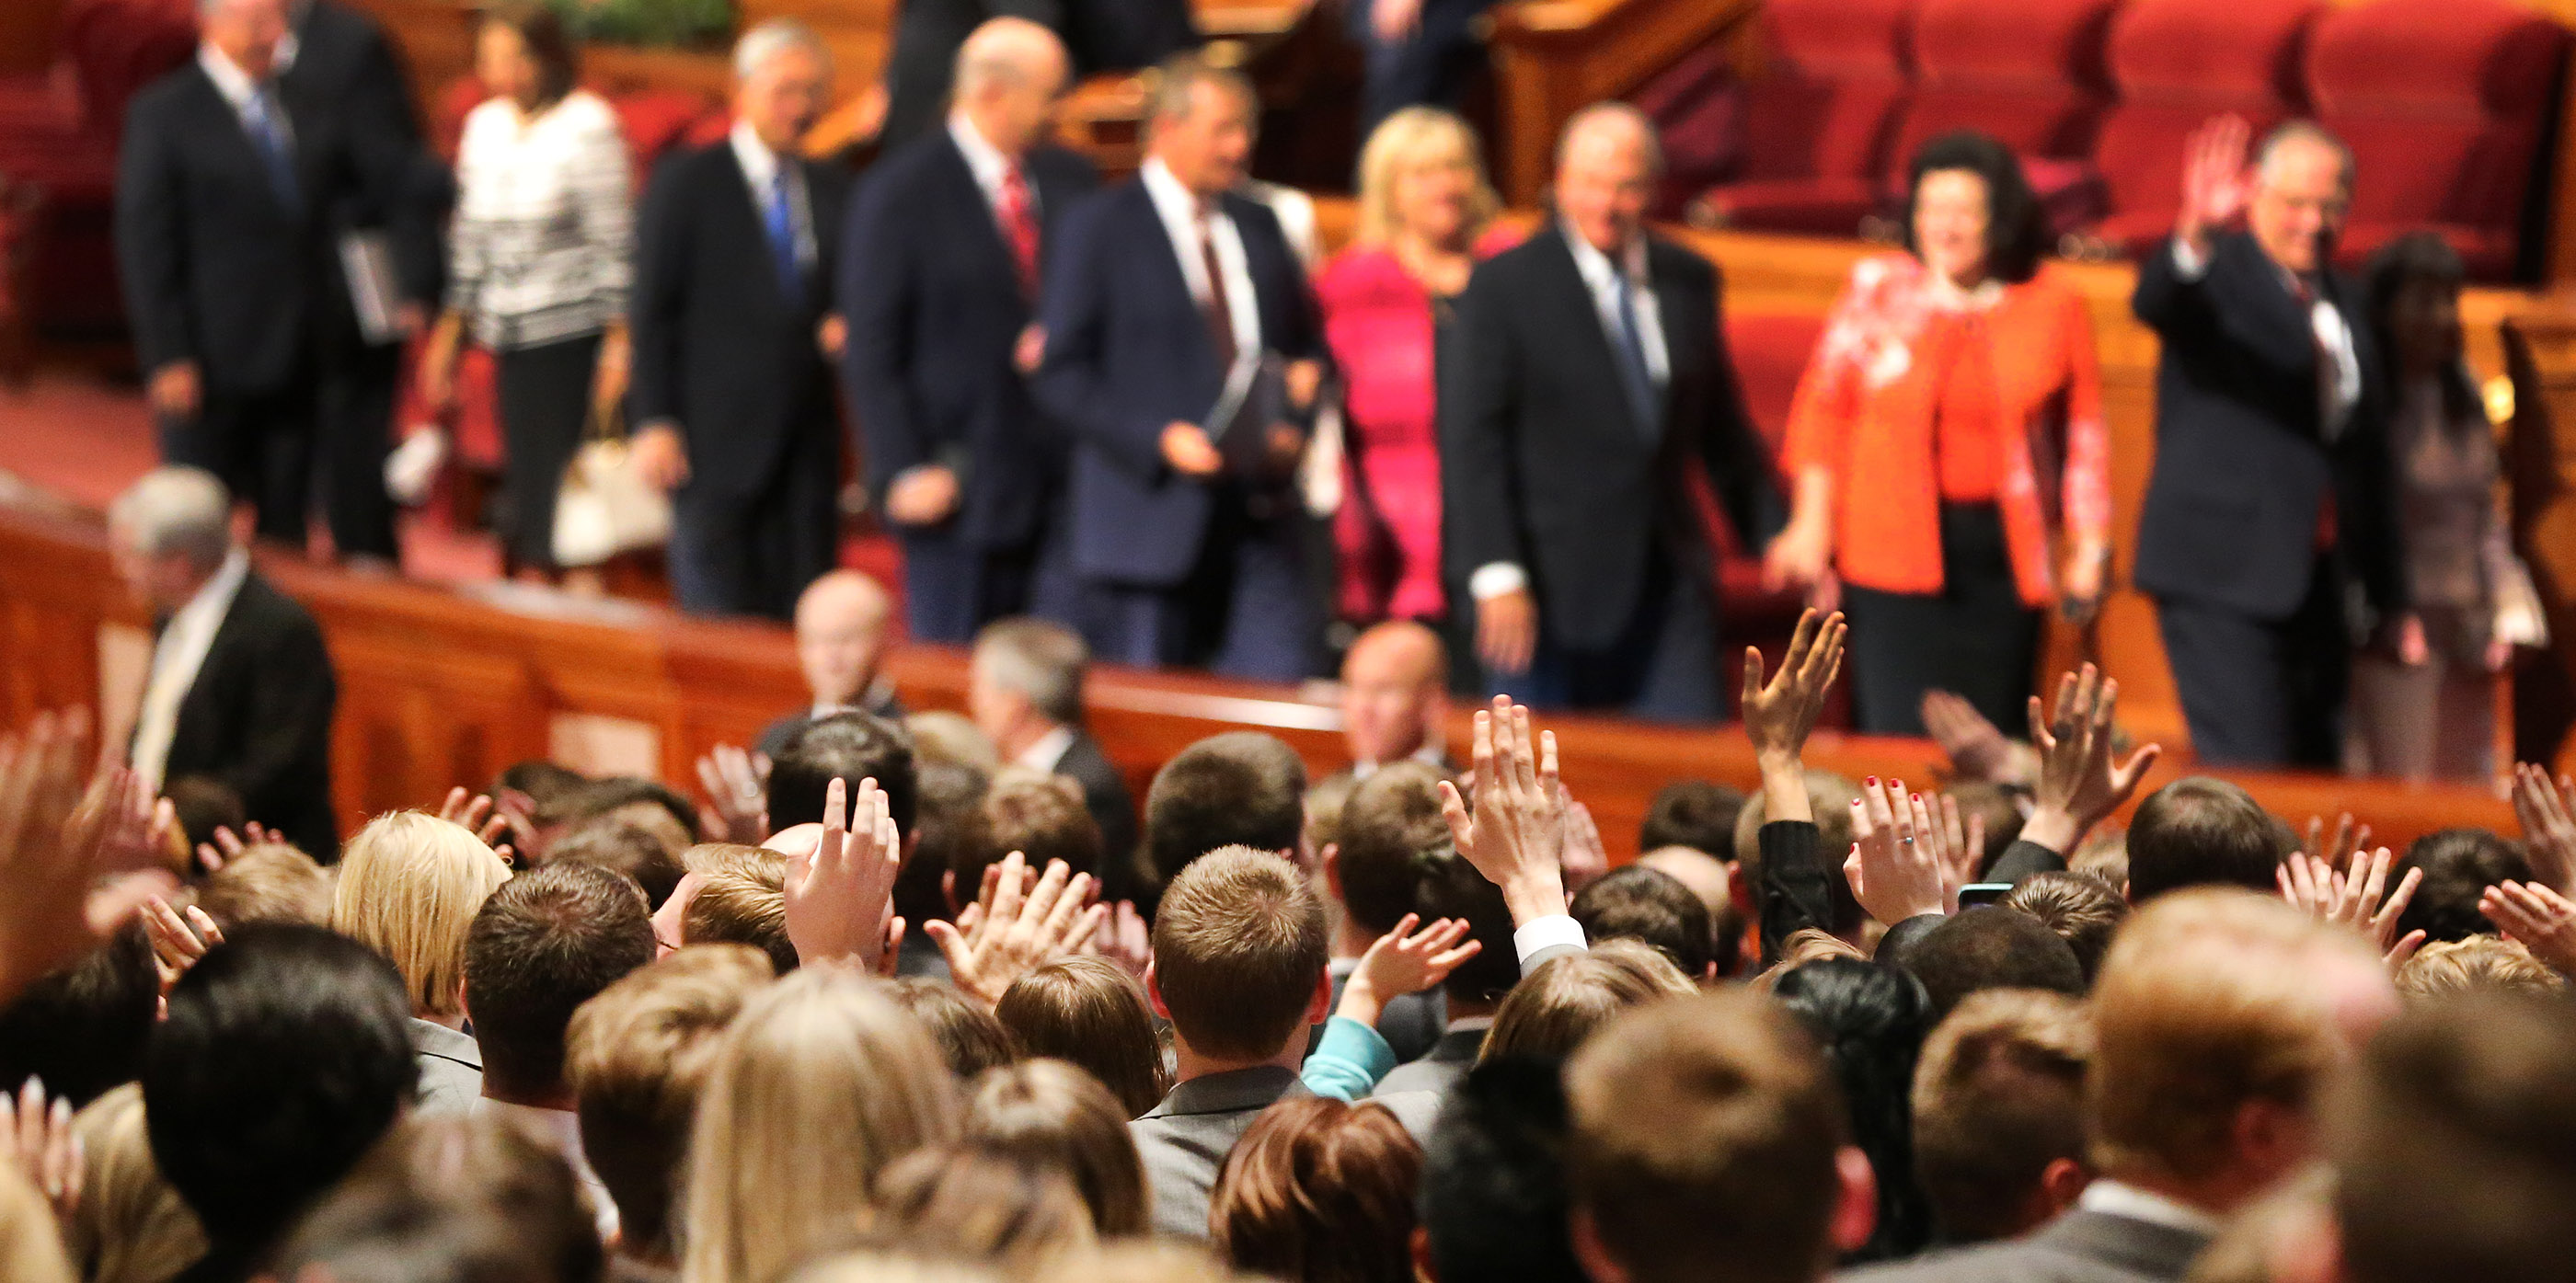 Attendees wave to general authorities after the Sunday afternoon session of the 188th Semiannual General Conference of The Church of Jesus Christ of Latter-day Saints in the Conference Center in downtown Salt Lake City on Sunday, Oct. 7, 2018.